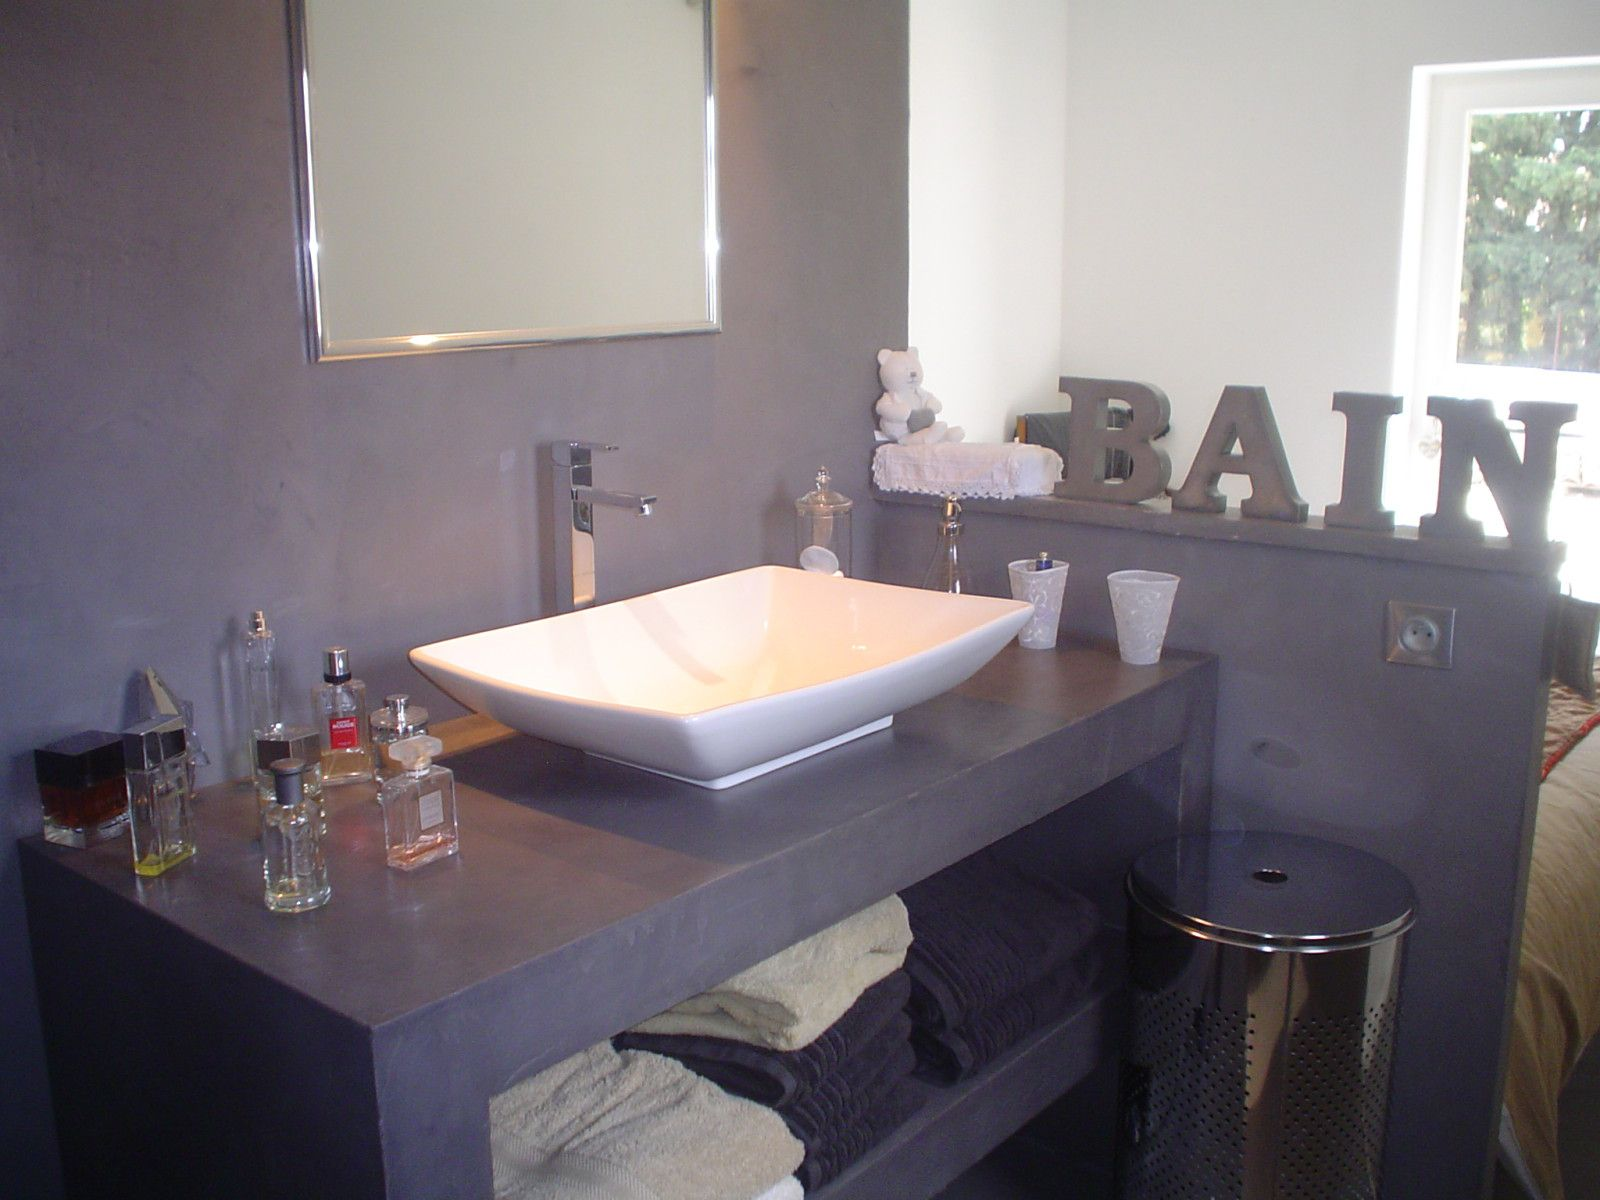 salle de bain en b ton cir gris le blog de b ton cr ation. Black Bedroom Furniture Sets. Home Design Ideas